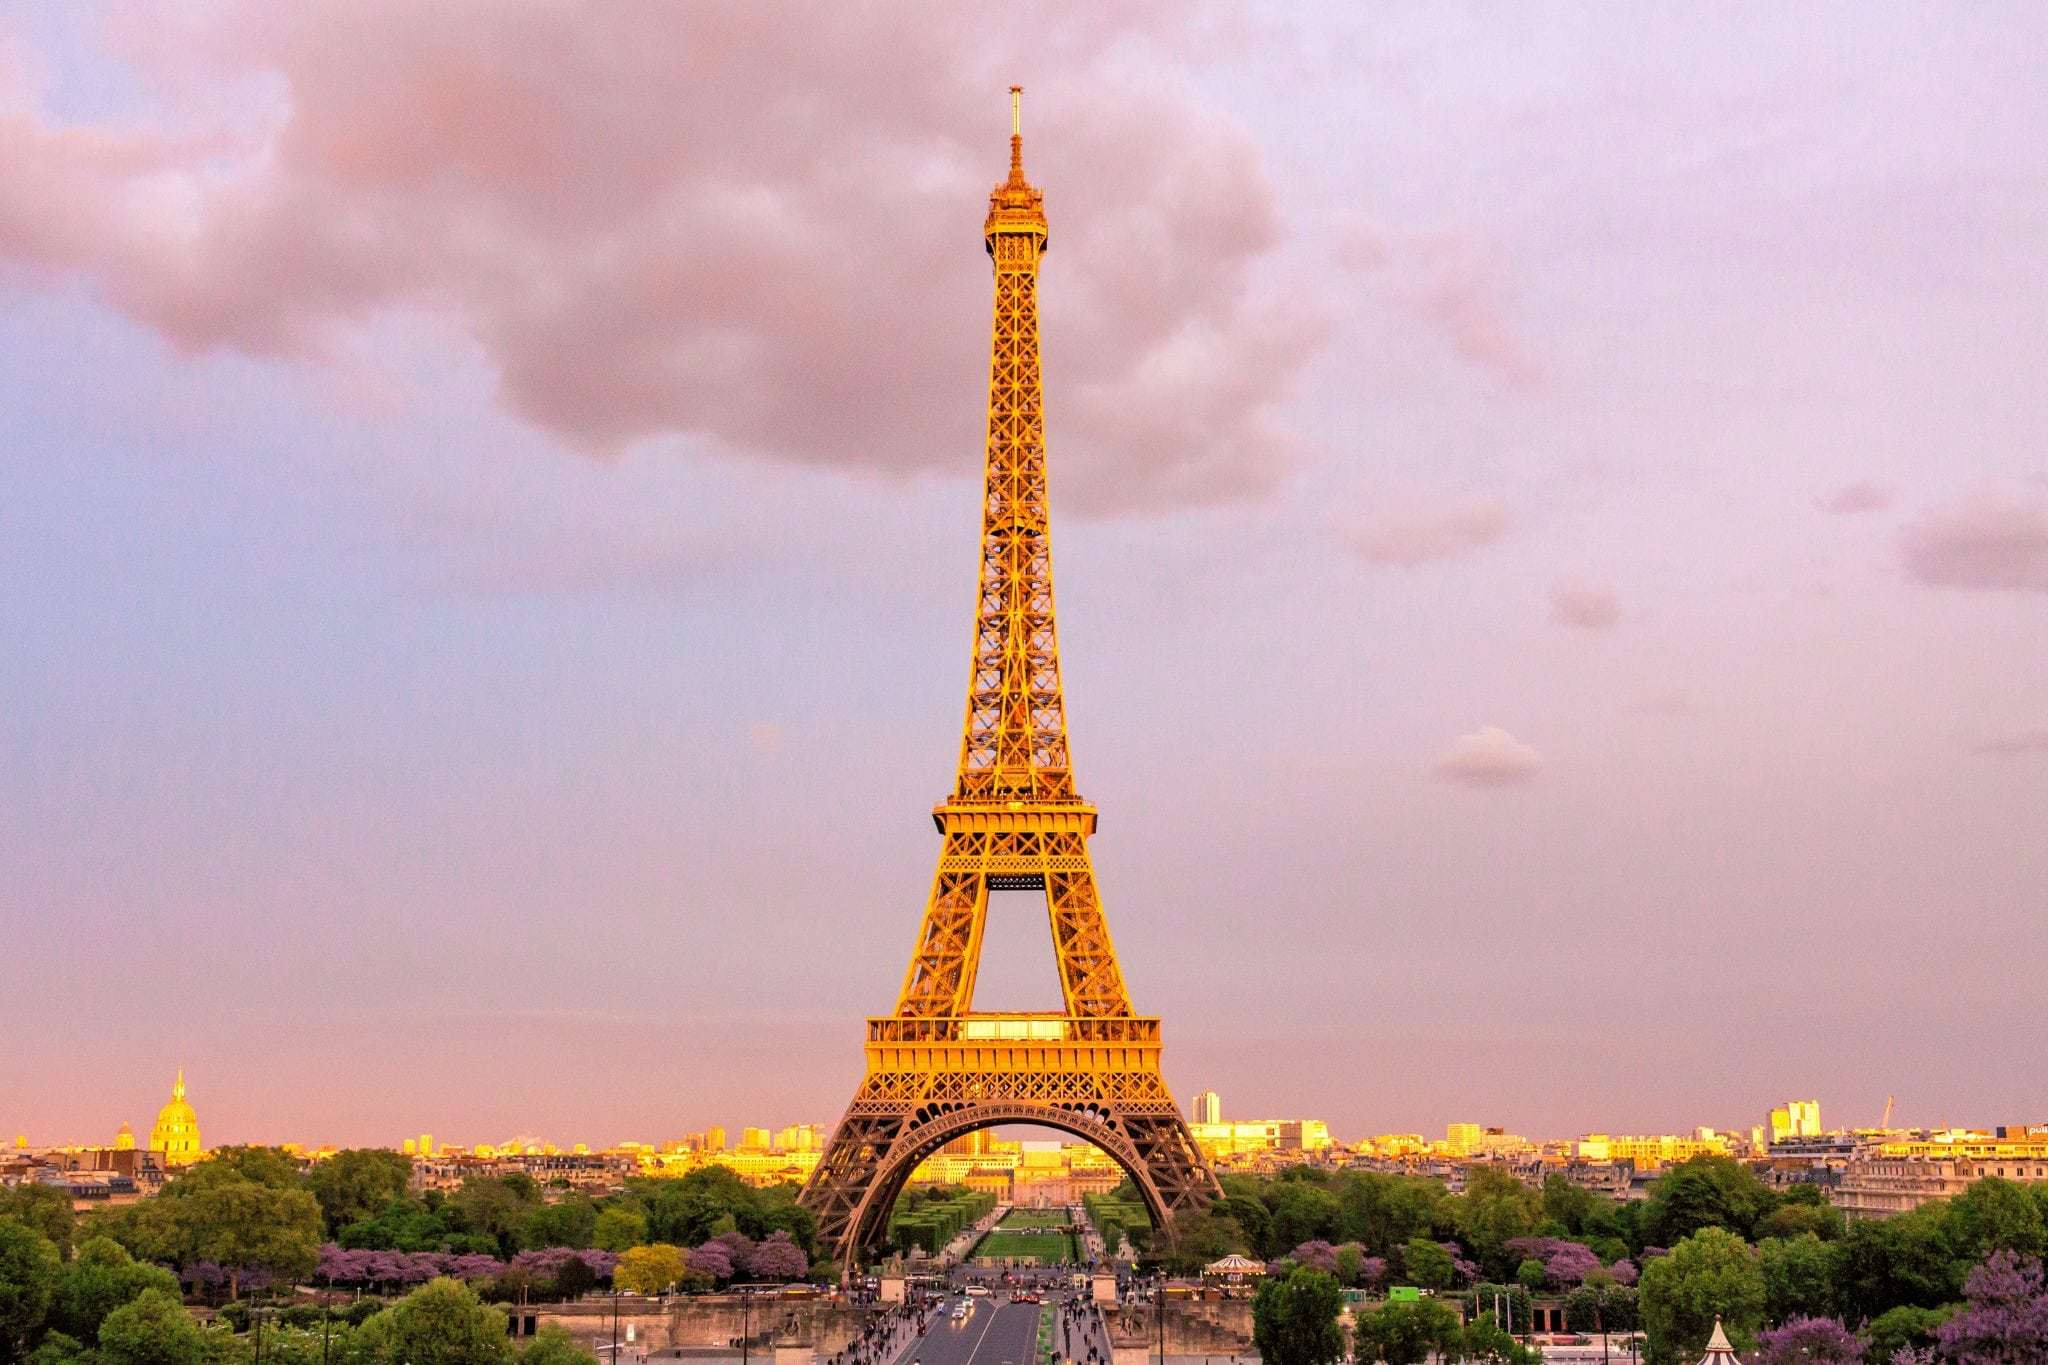 Paris - Eiffel Tower photo